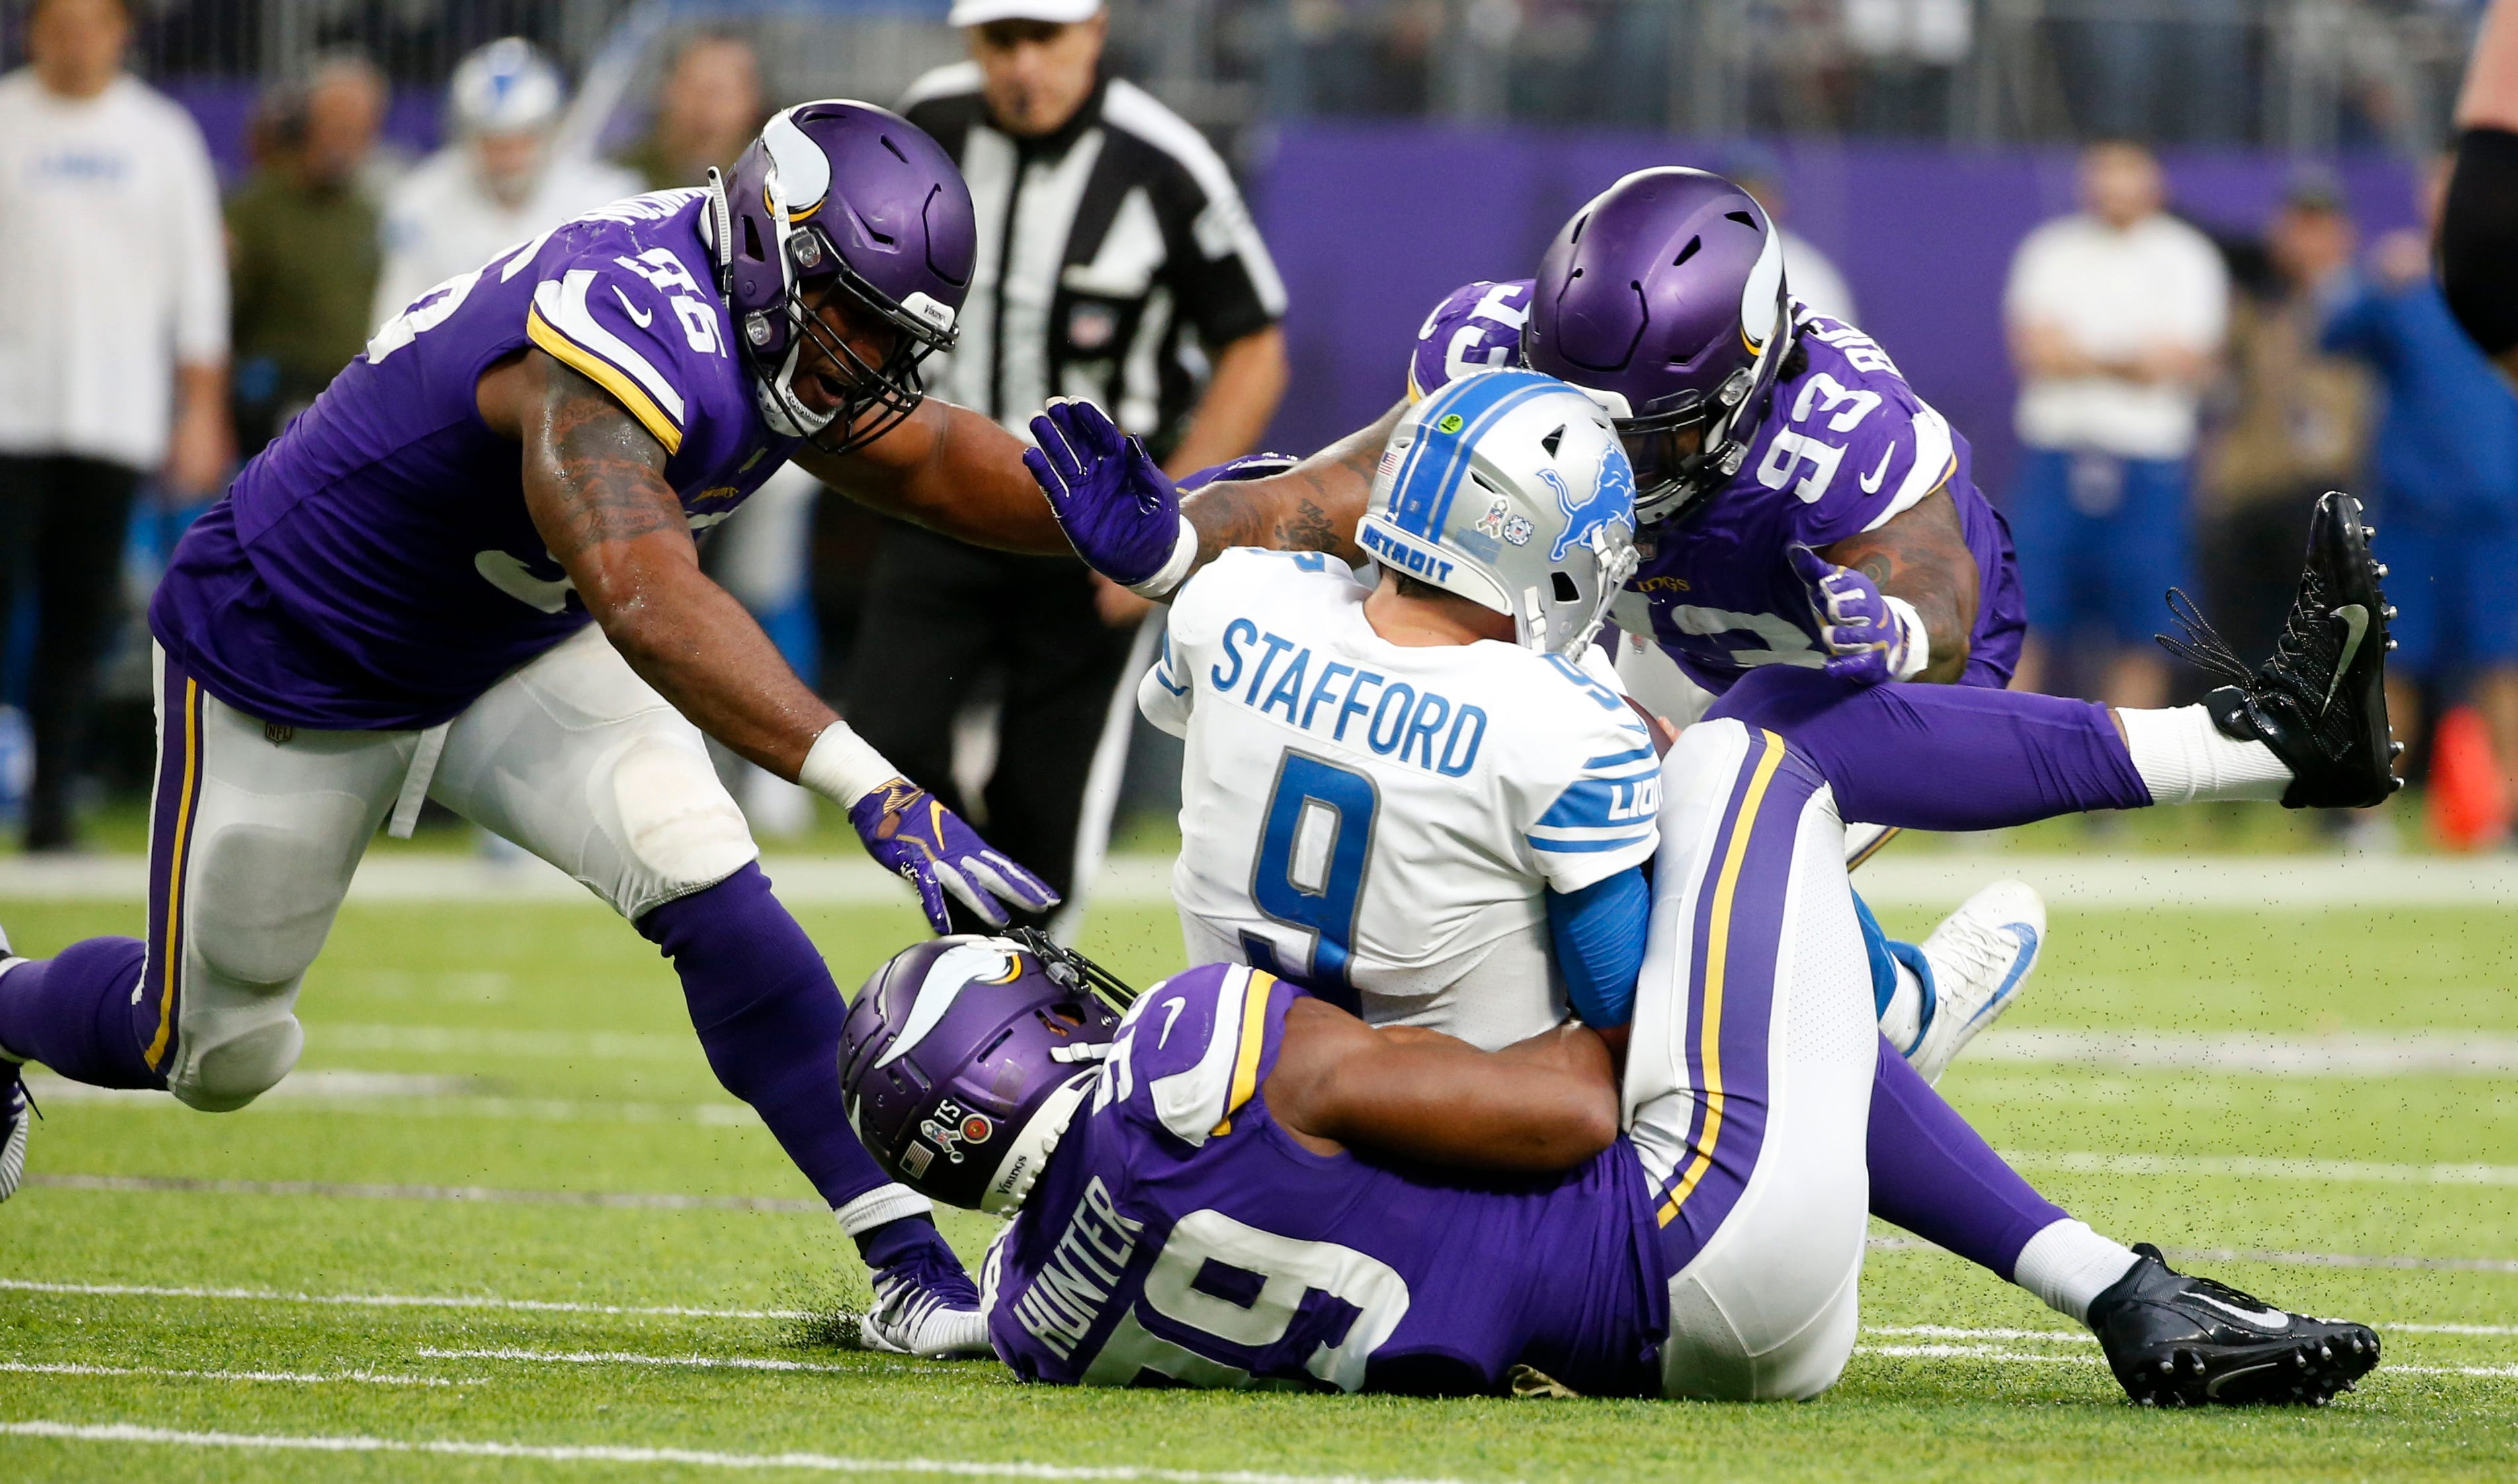 Lions quarterback Matthew Stafford is sacked by Vikings defenders Tom Johnson, left, Sheldon Richardson (93) and Danielle Hunter (99) during the first half on Sunday, Nov. 4, 2018, in Minneapolis.